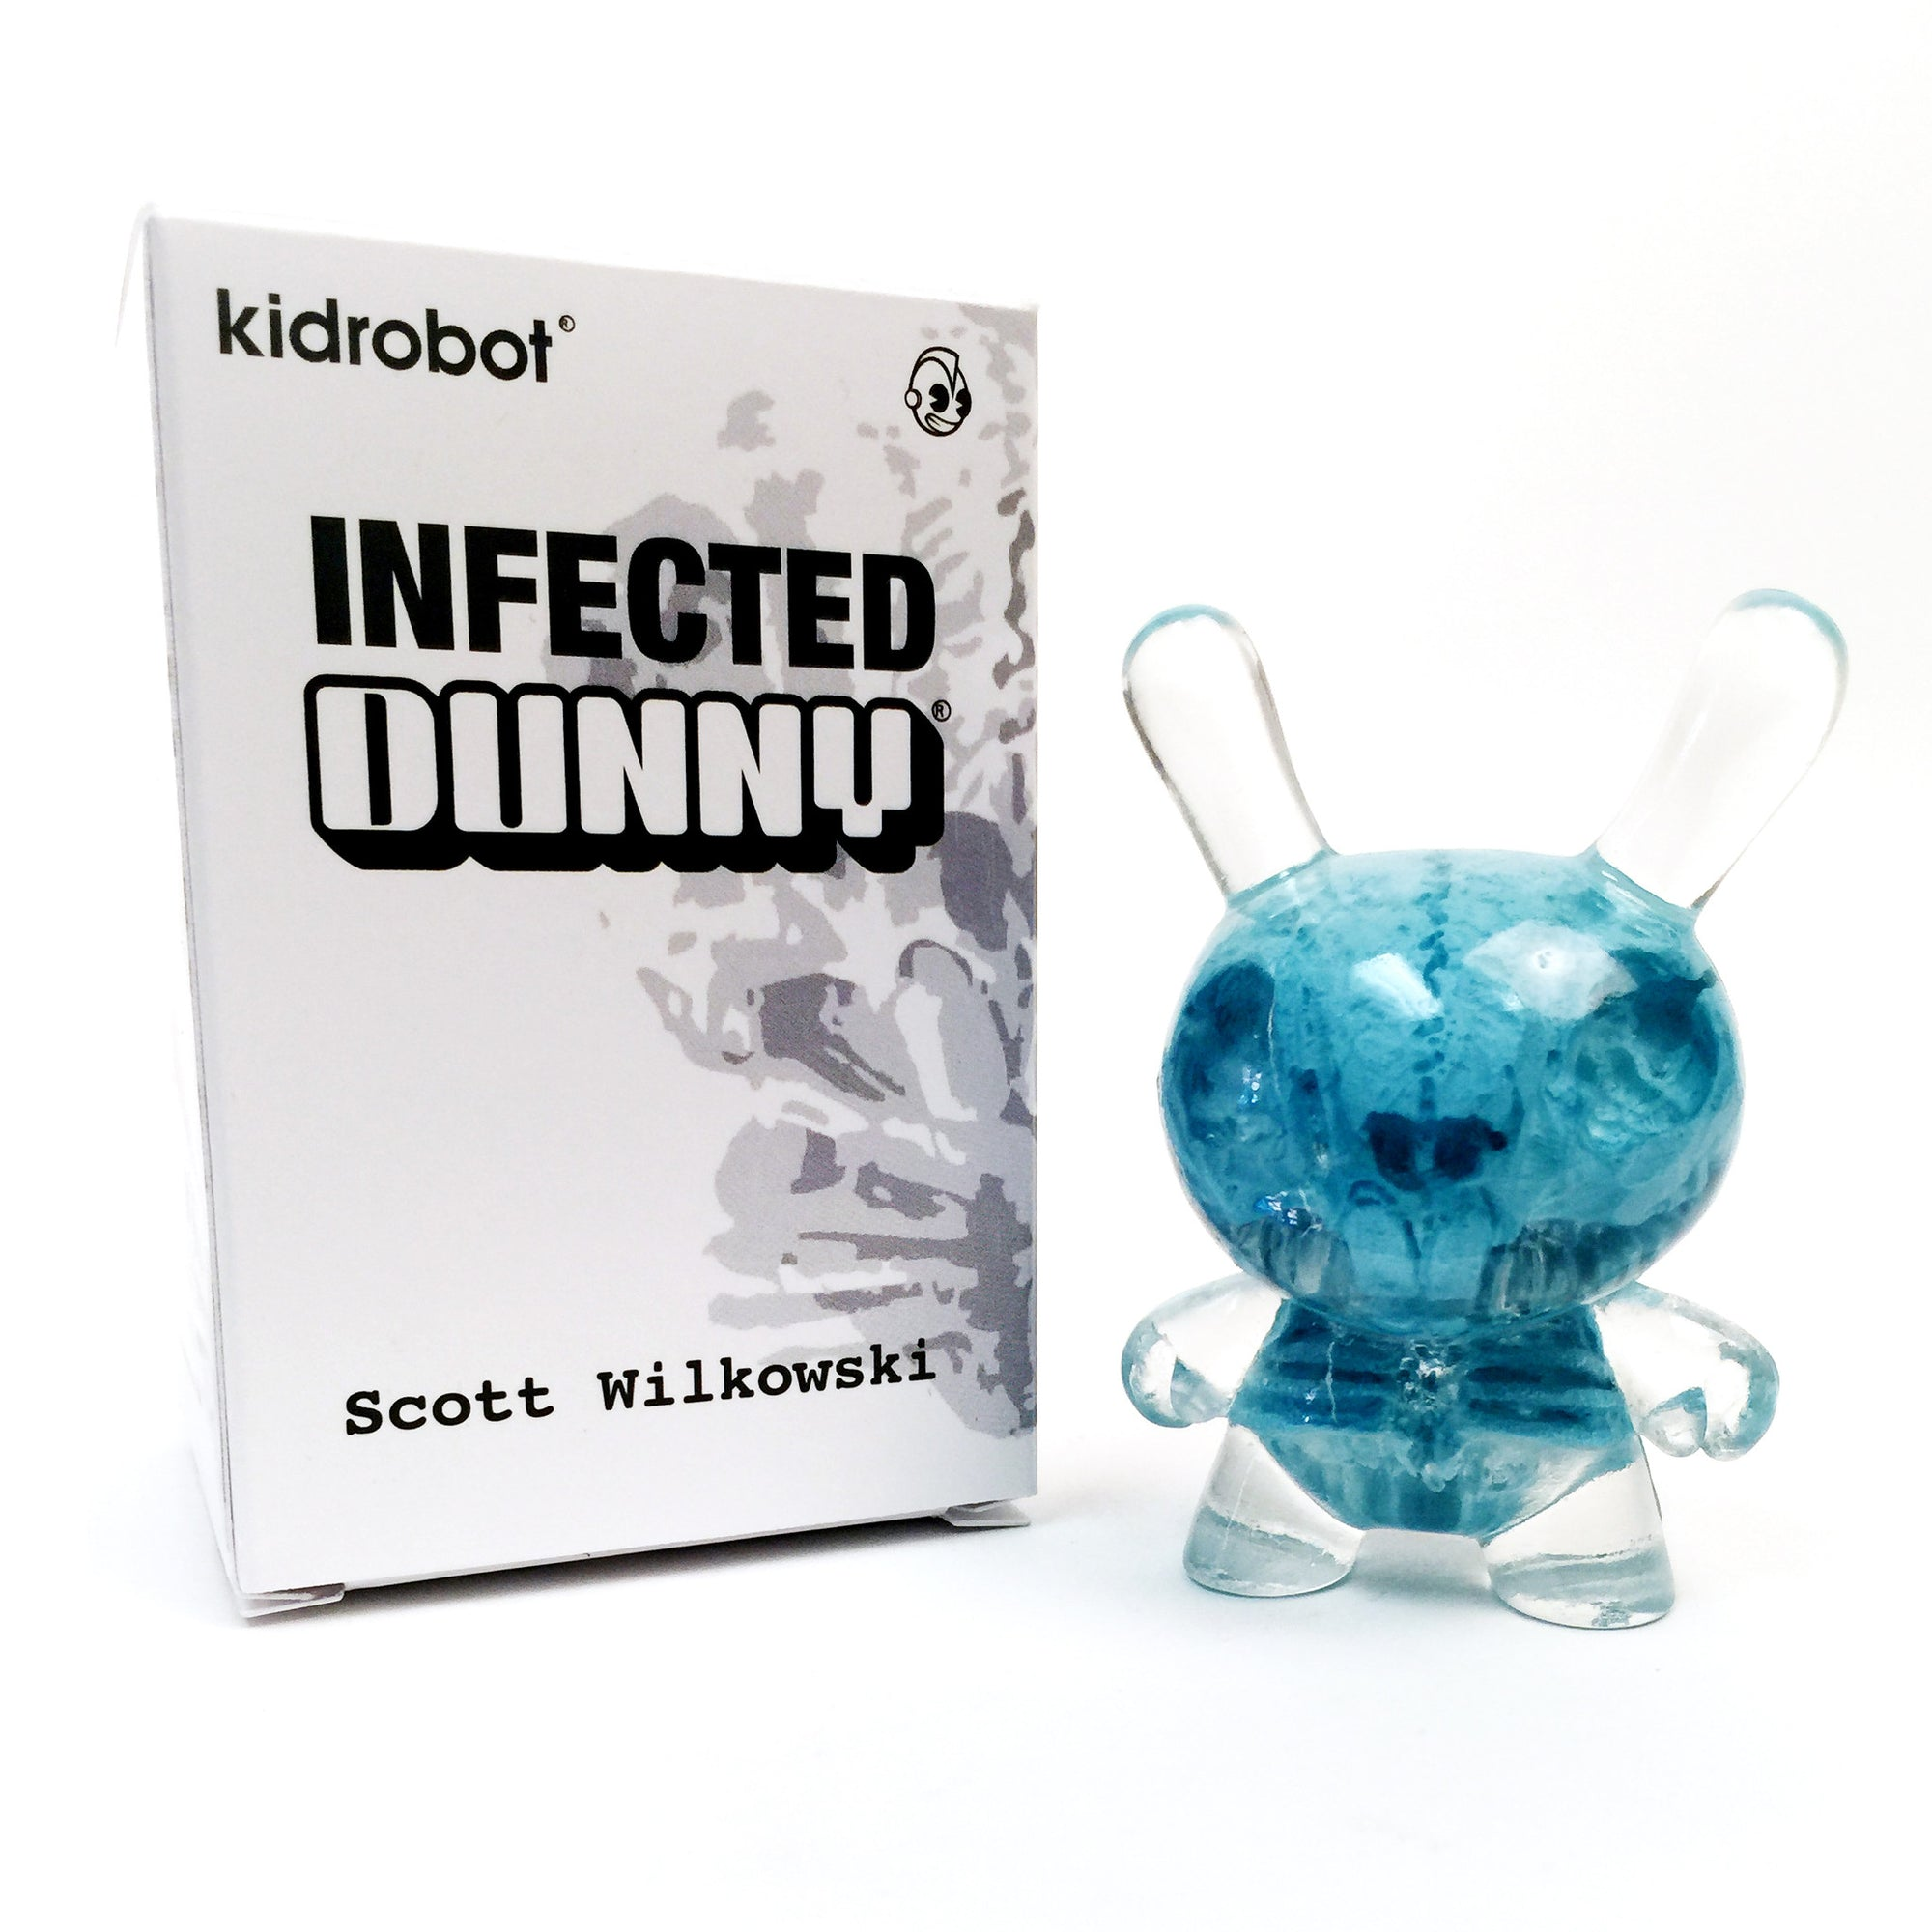 "Cryogenic Blue 3"" Infected Dunny by Scott Wilkowski Now Available at Kidrobot.com"